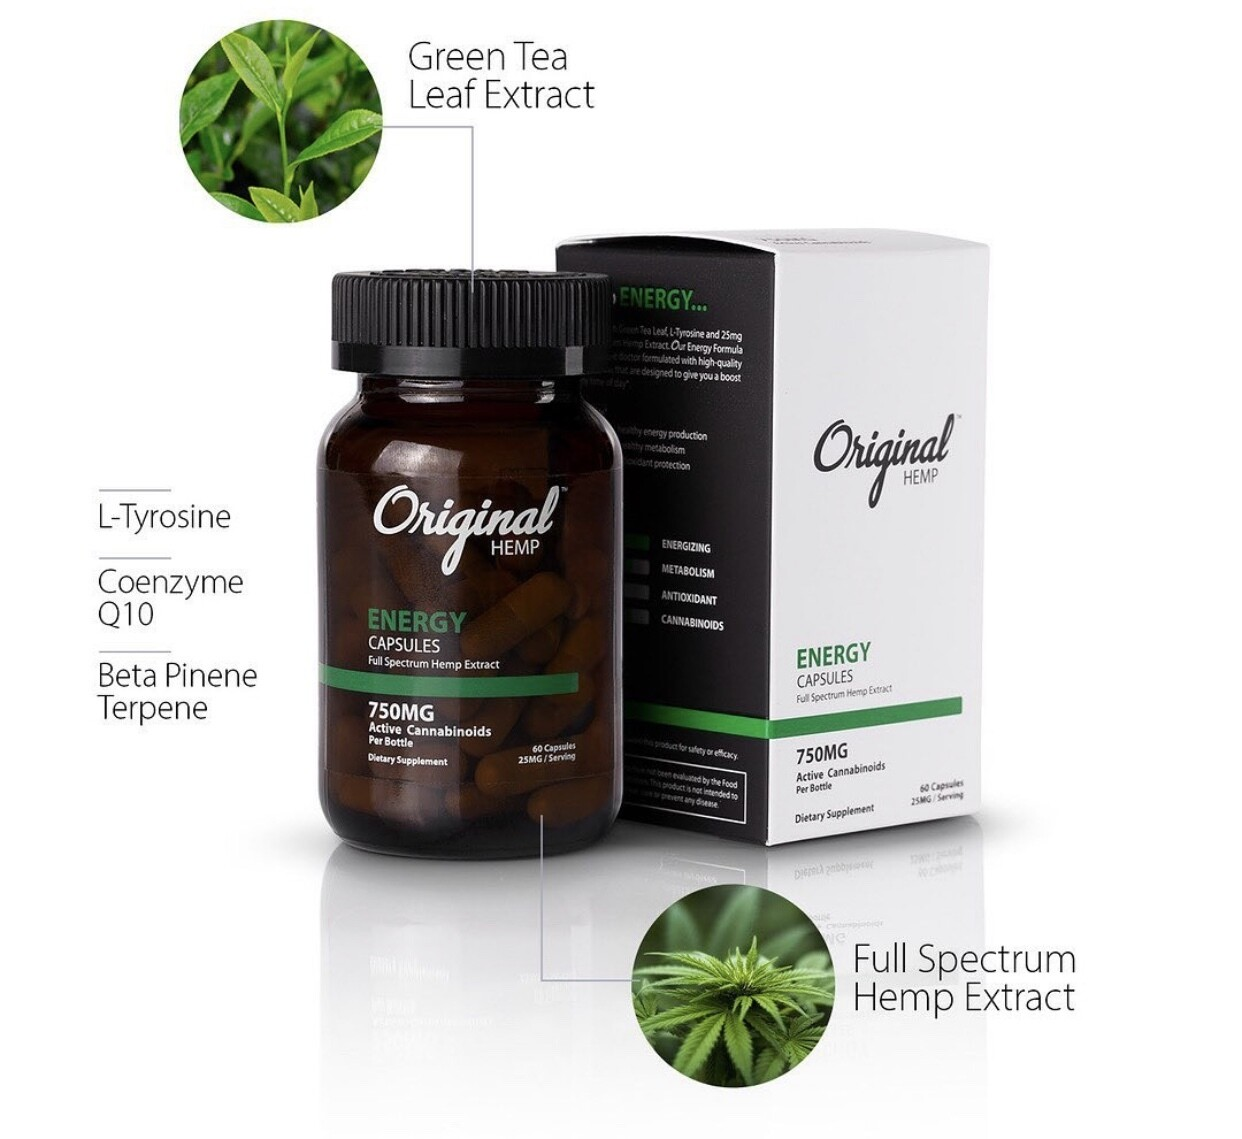 Original hemp capsules energy